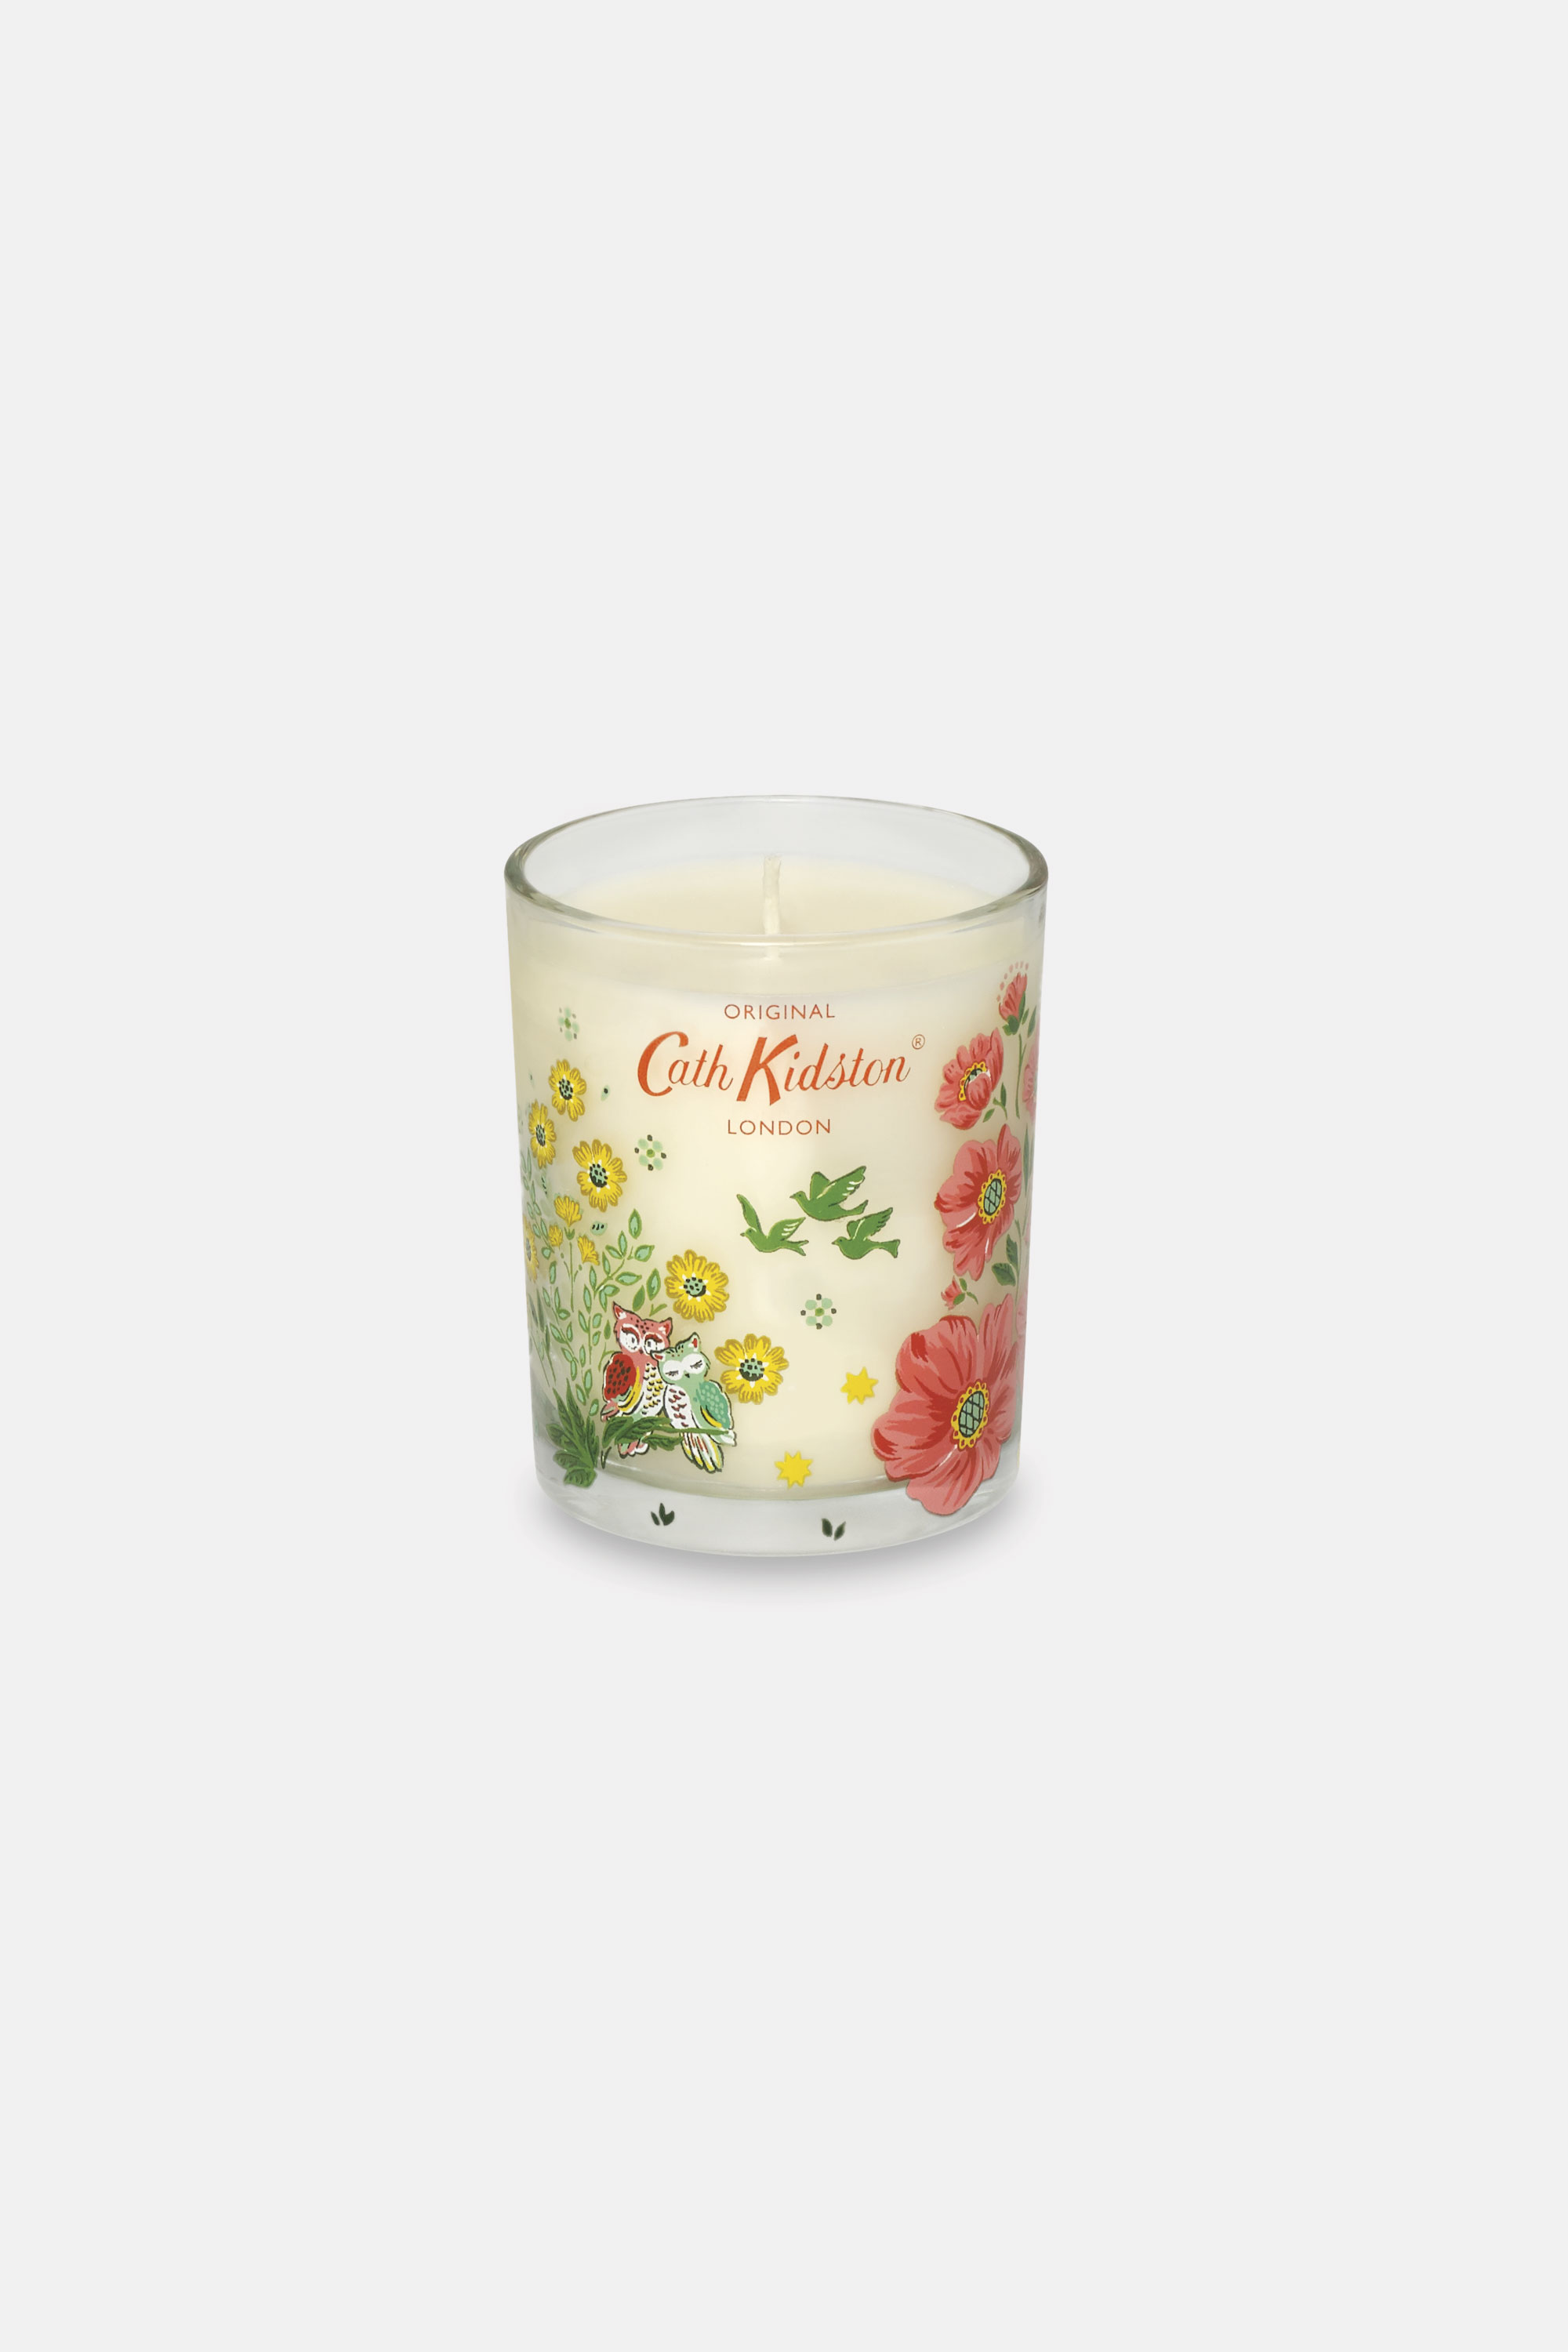 Cath Kidston Magical Woodland Lavender and Camomile Candle in Warm Cream